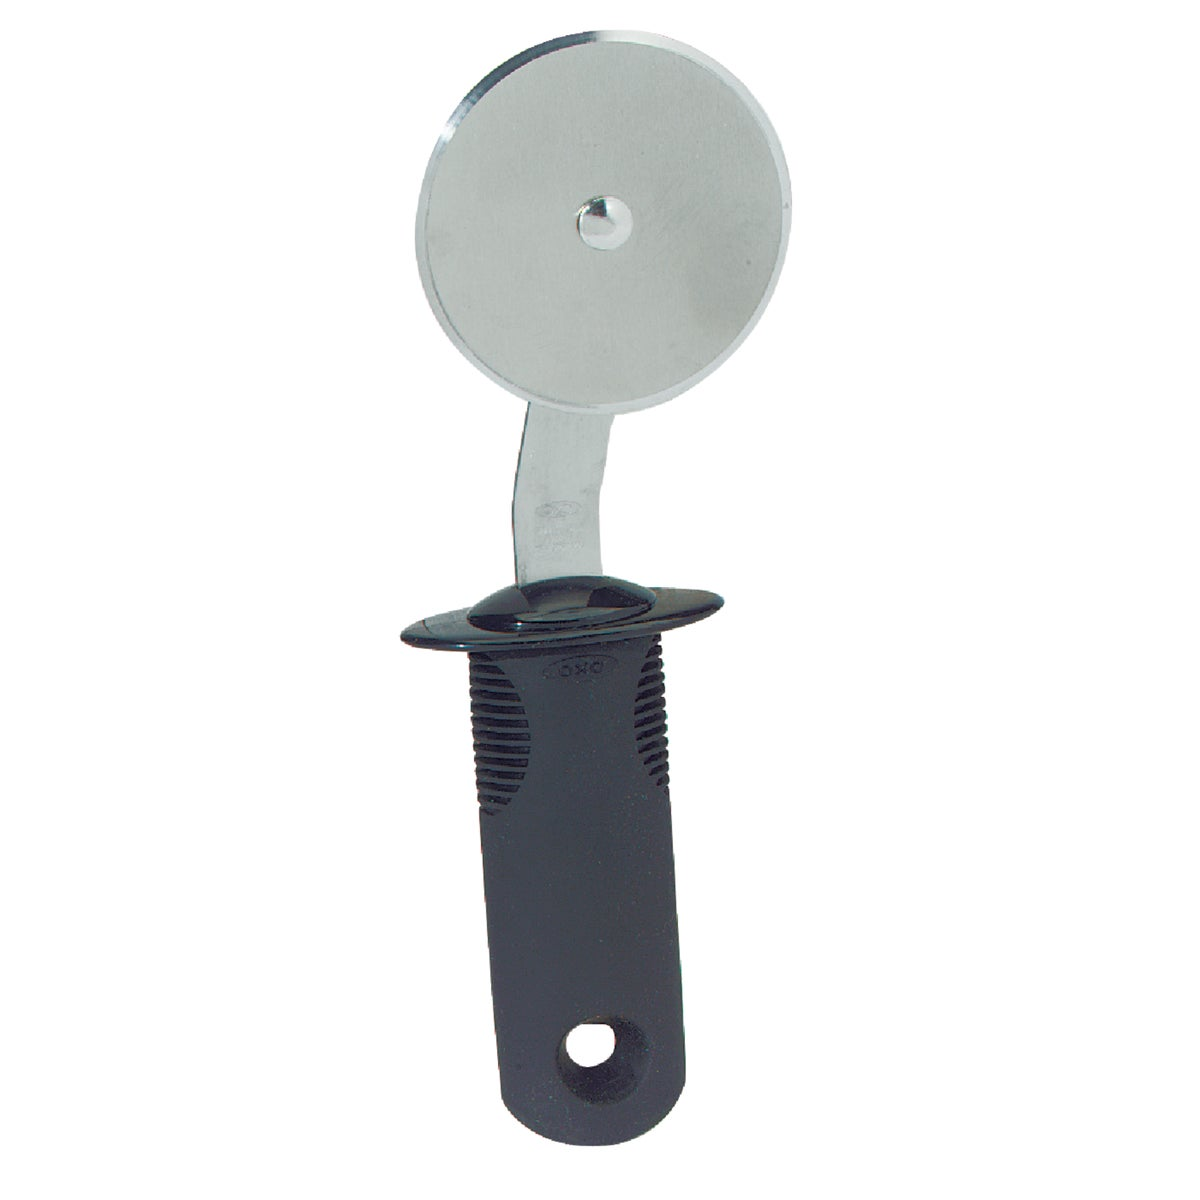 PIZZA CUTTER - 20781 by Oxo International